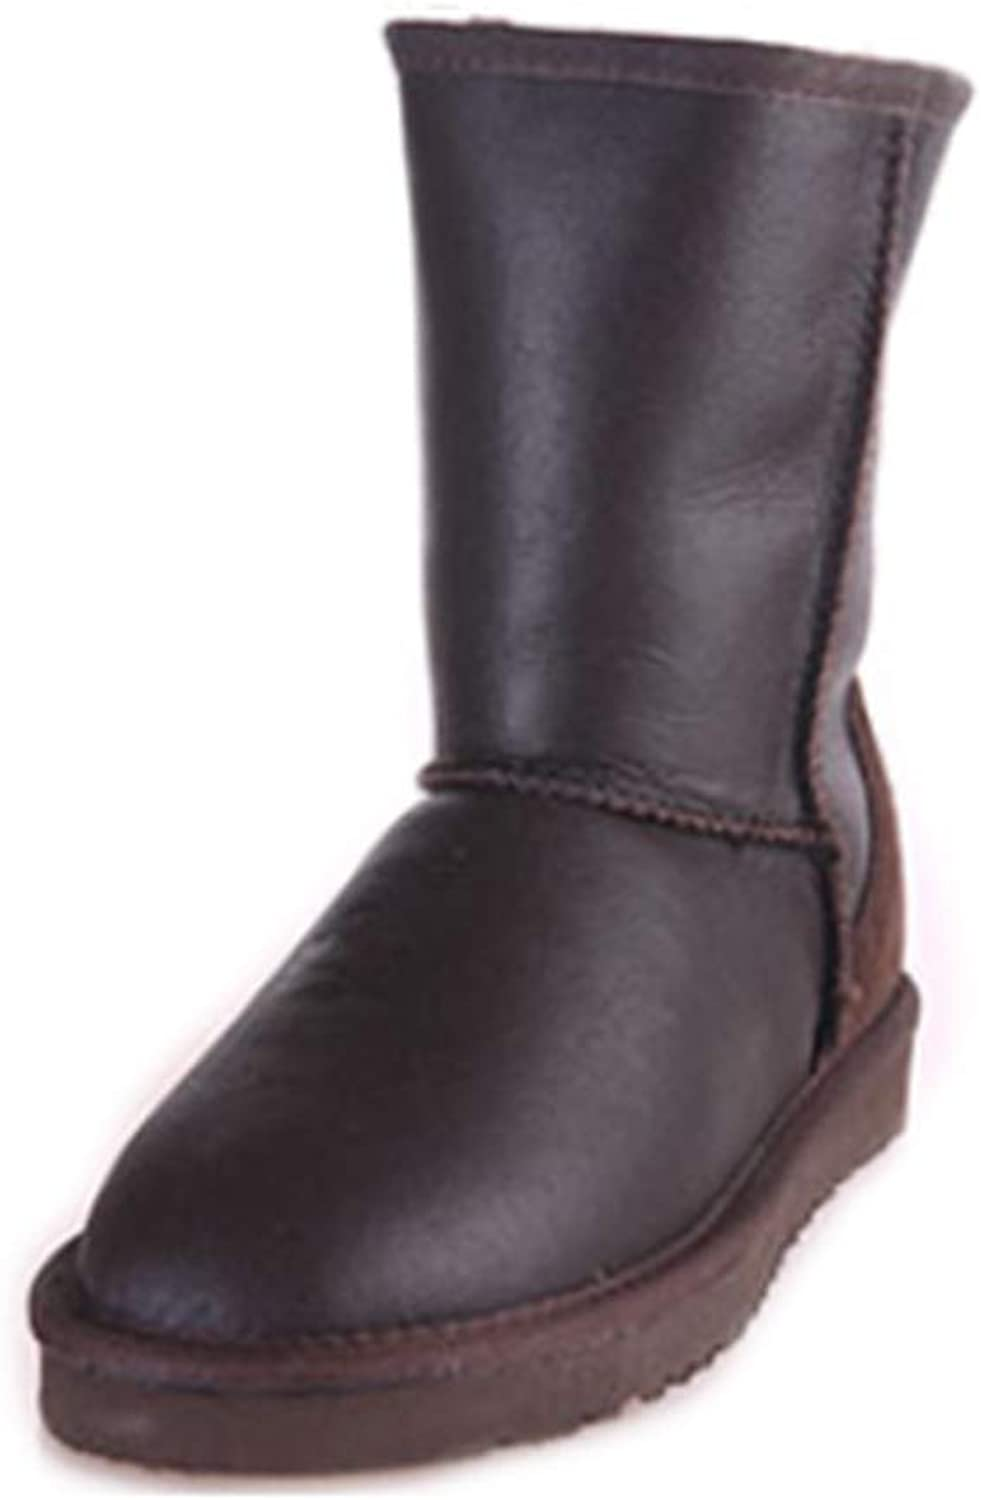 INOE CREATE GLAMOUR Women Winter Boots Genuine Sheepskin Leather Real Sheep Fur Lined Classic Mid-Calf Waterproof Winter Snow Boots Women Winter shoes Metal Black